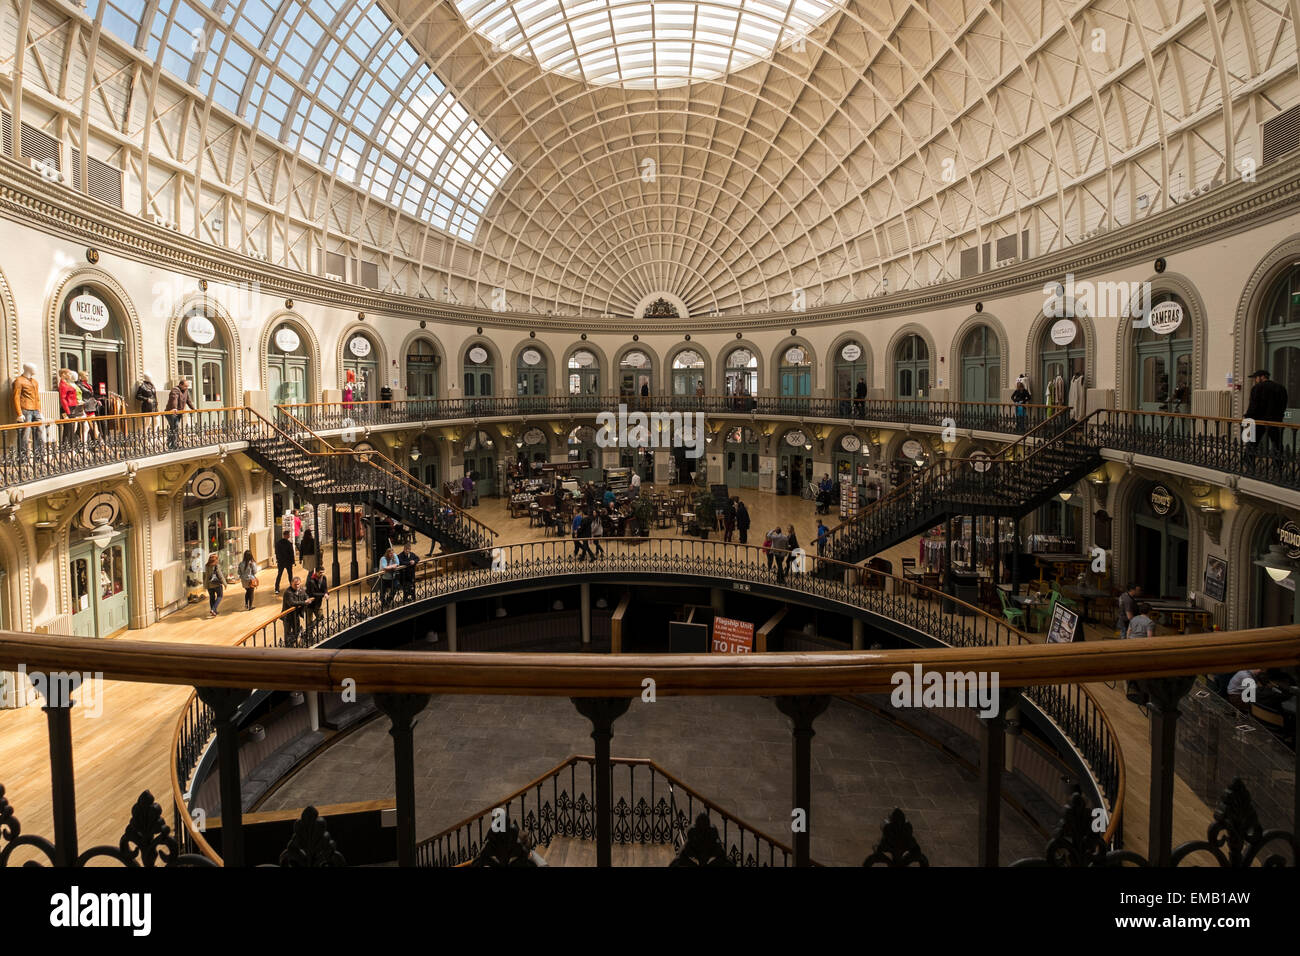 The Leeds Corn Exchange is a Victorian building in Leeds, West Yorkshire, England, which was designed by Cuthbert - Stock Image